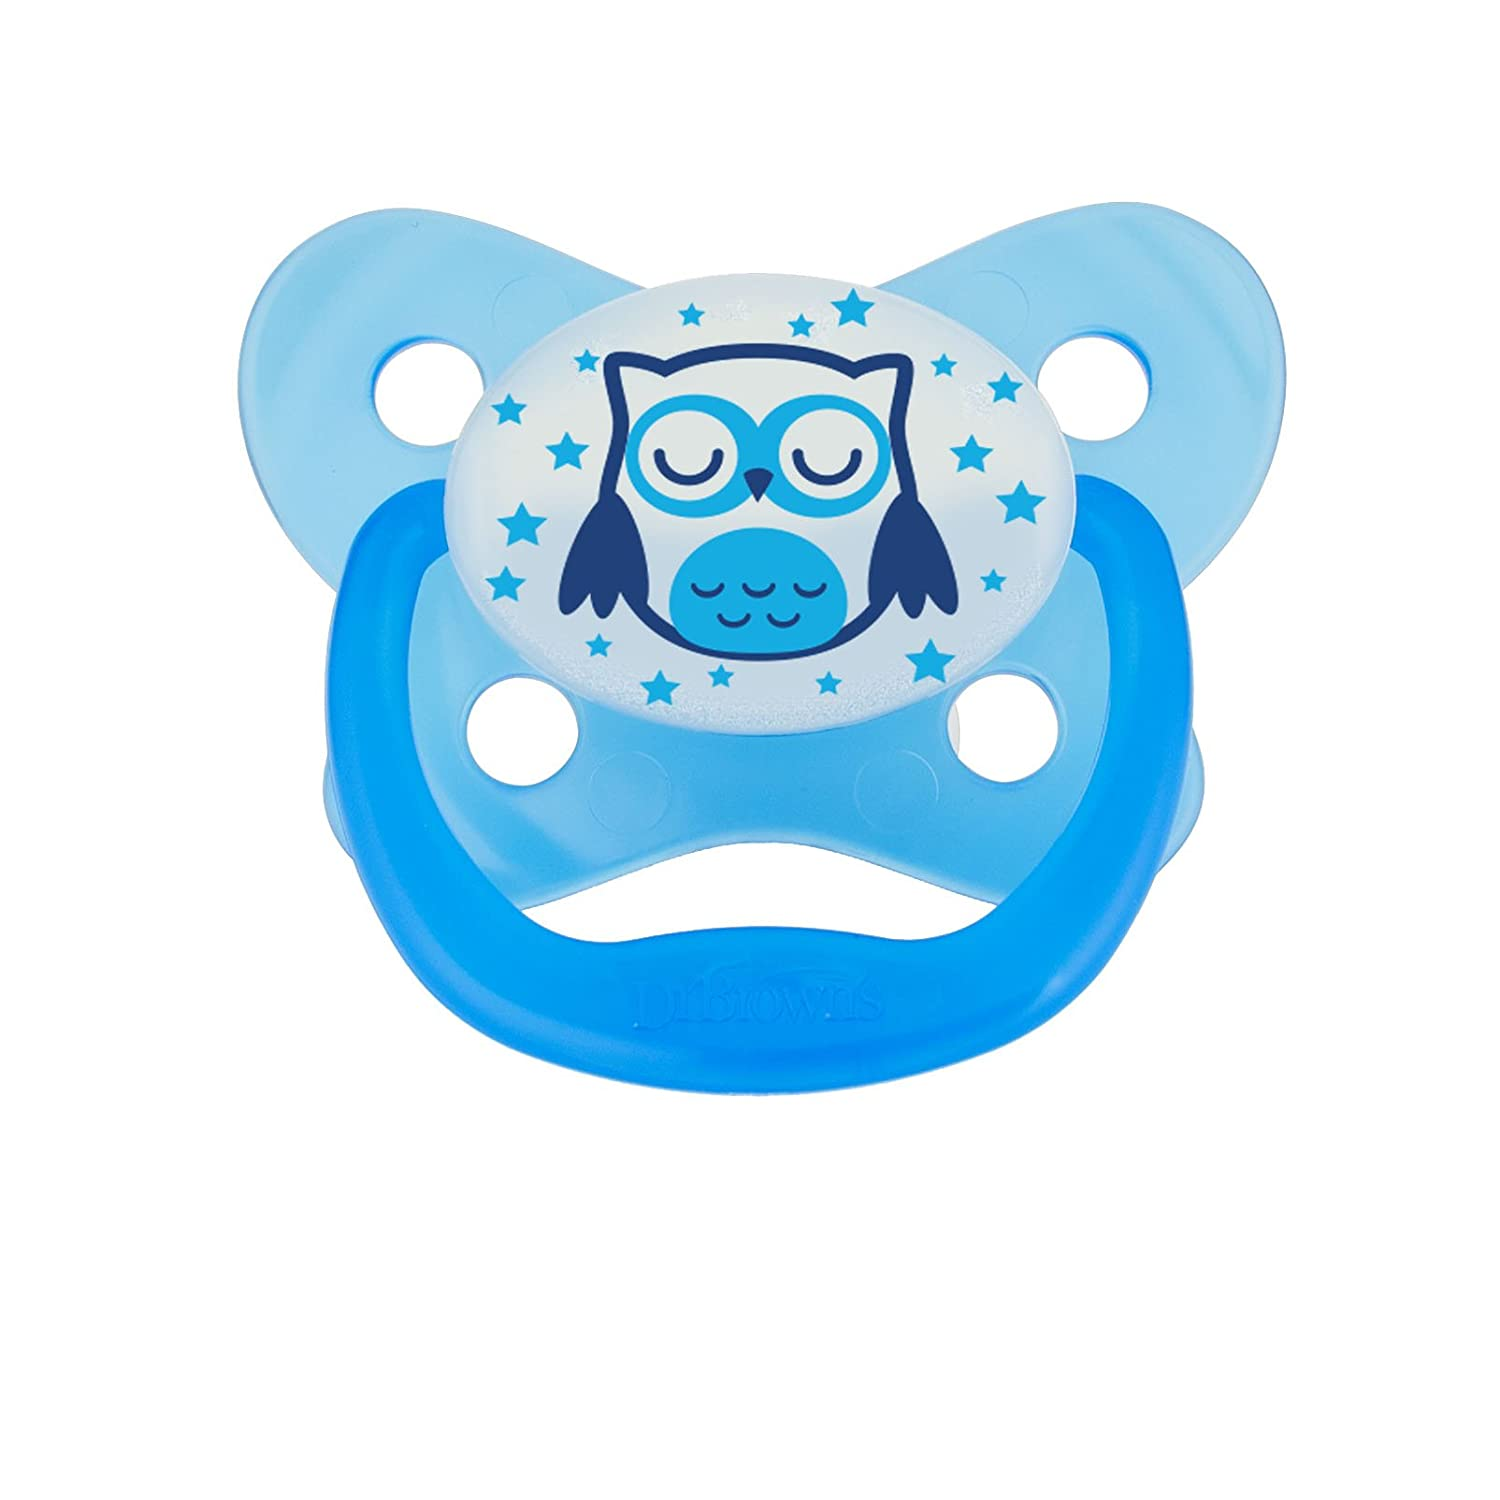 Dr Brown's Prevent Glow in The Dark Soother, 12 Months Plus, Blue, Owl Dr Brown' s Natural Flow DRB-PV31008